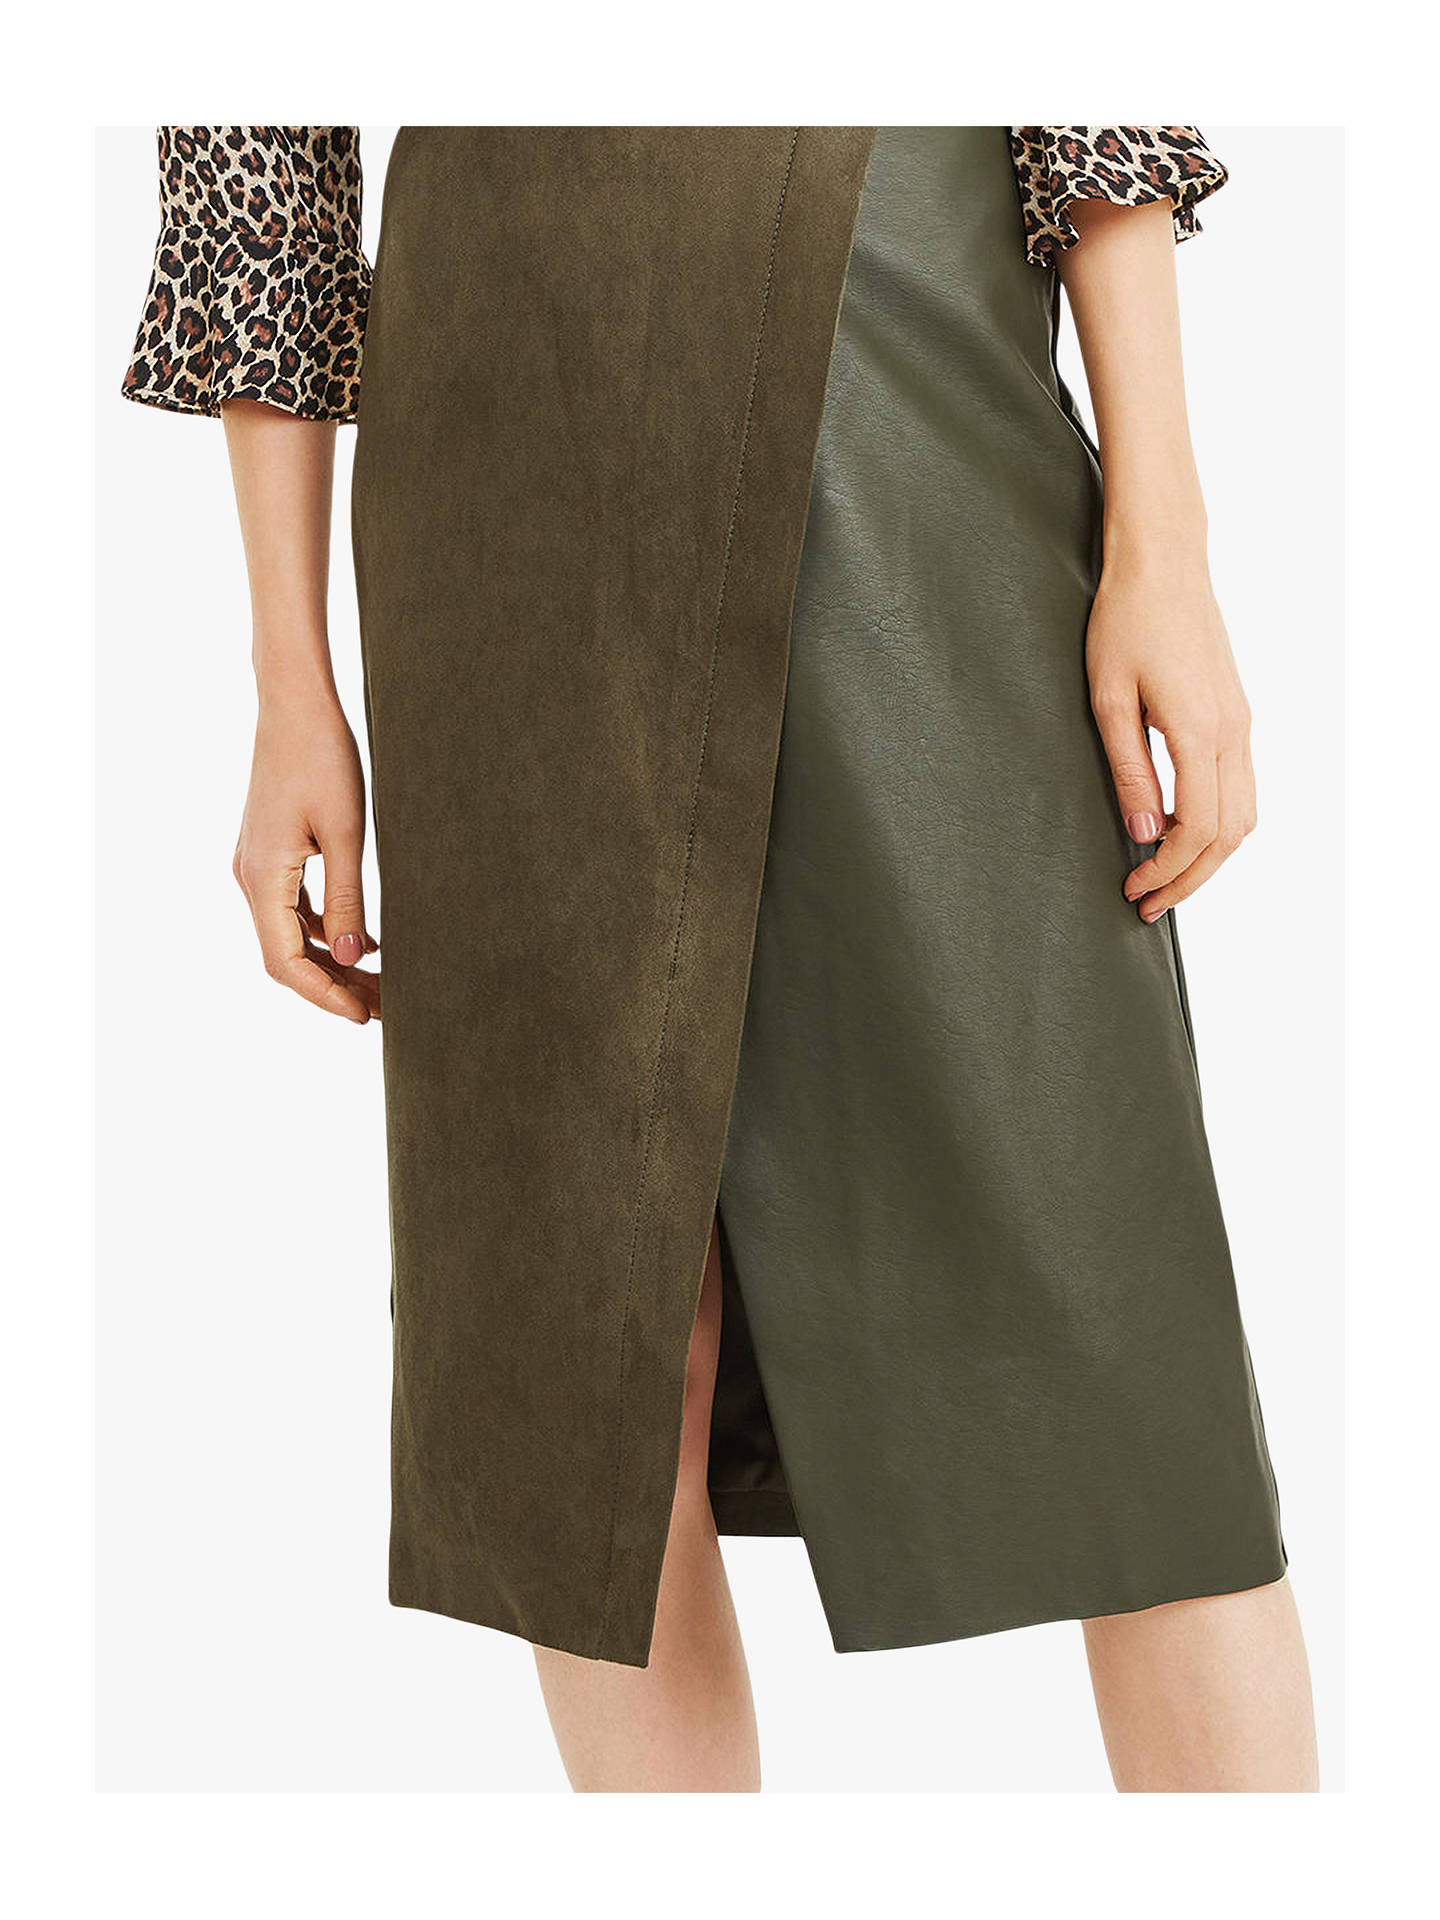 7e0c654dcf70 ... Buy Oasis Faux Suede Asymmetric Midi Skirt, Khaki, 10 Online at  johnlewis.com